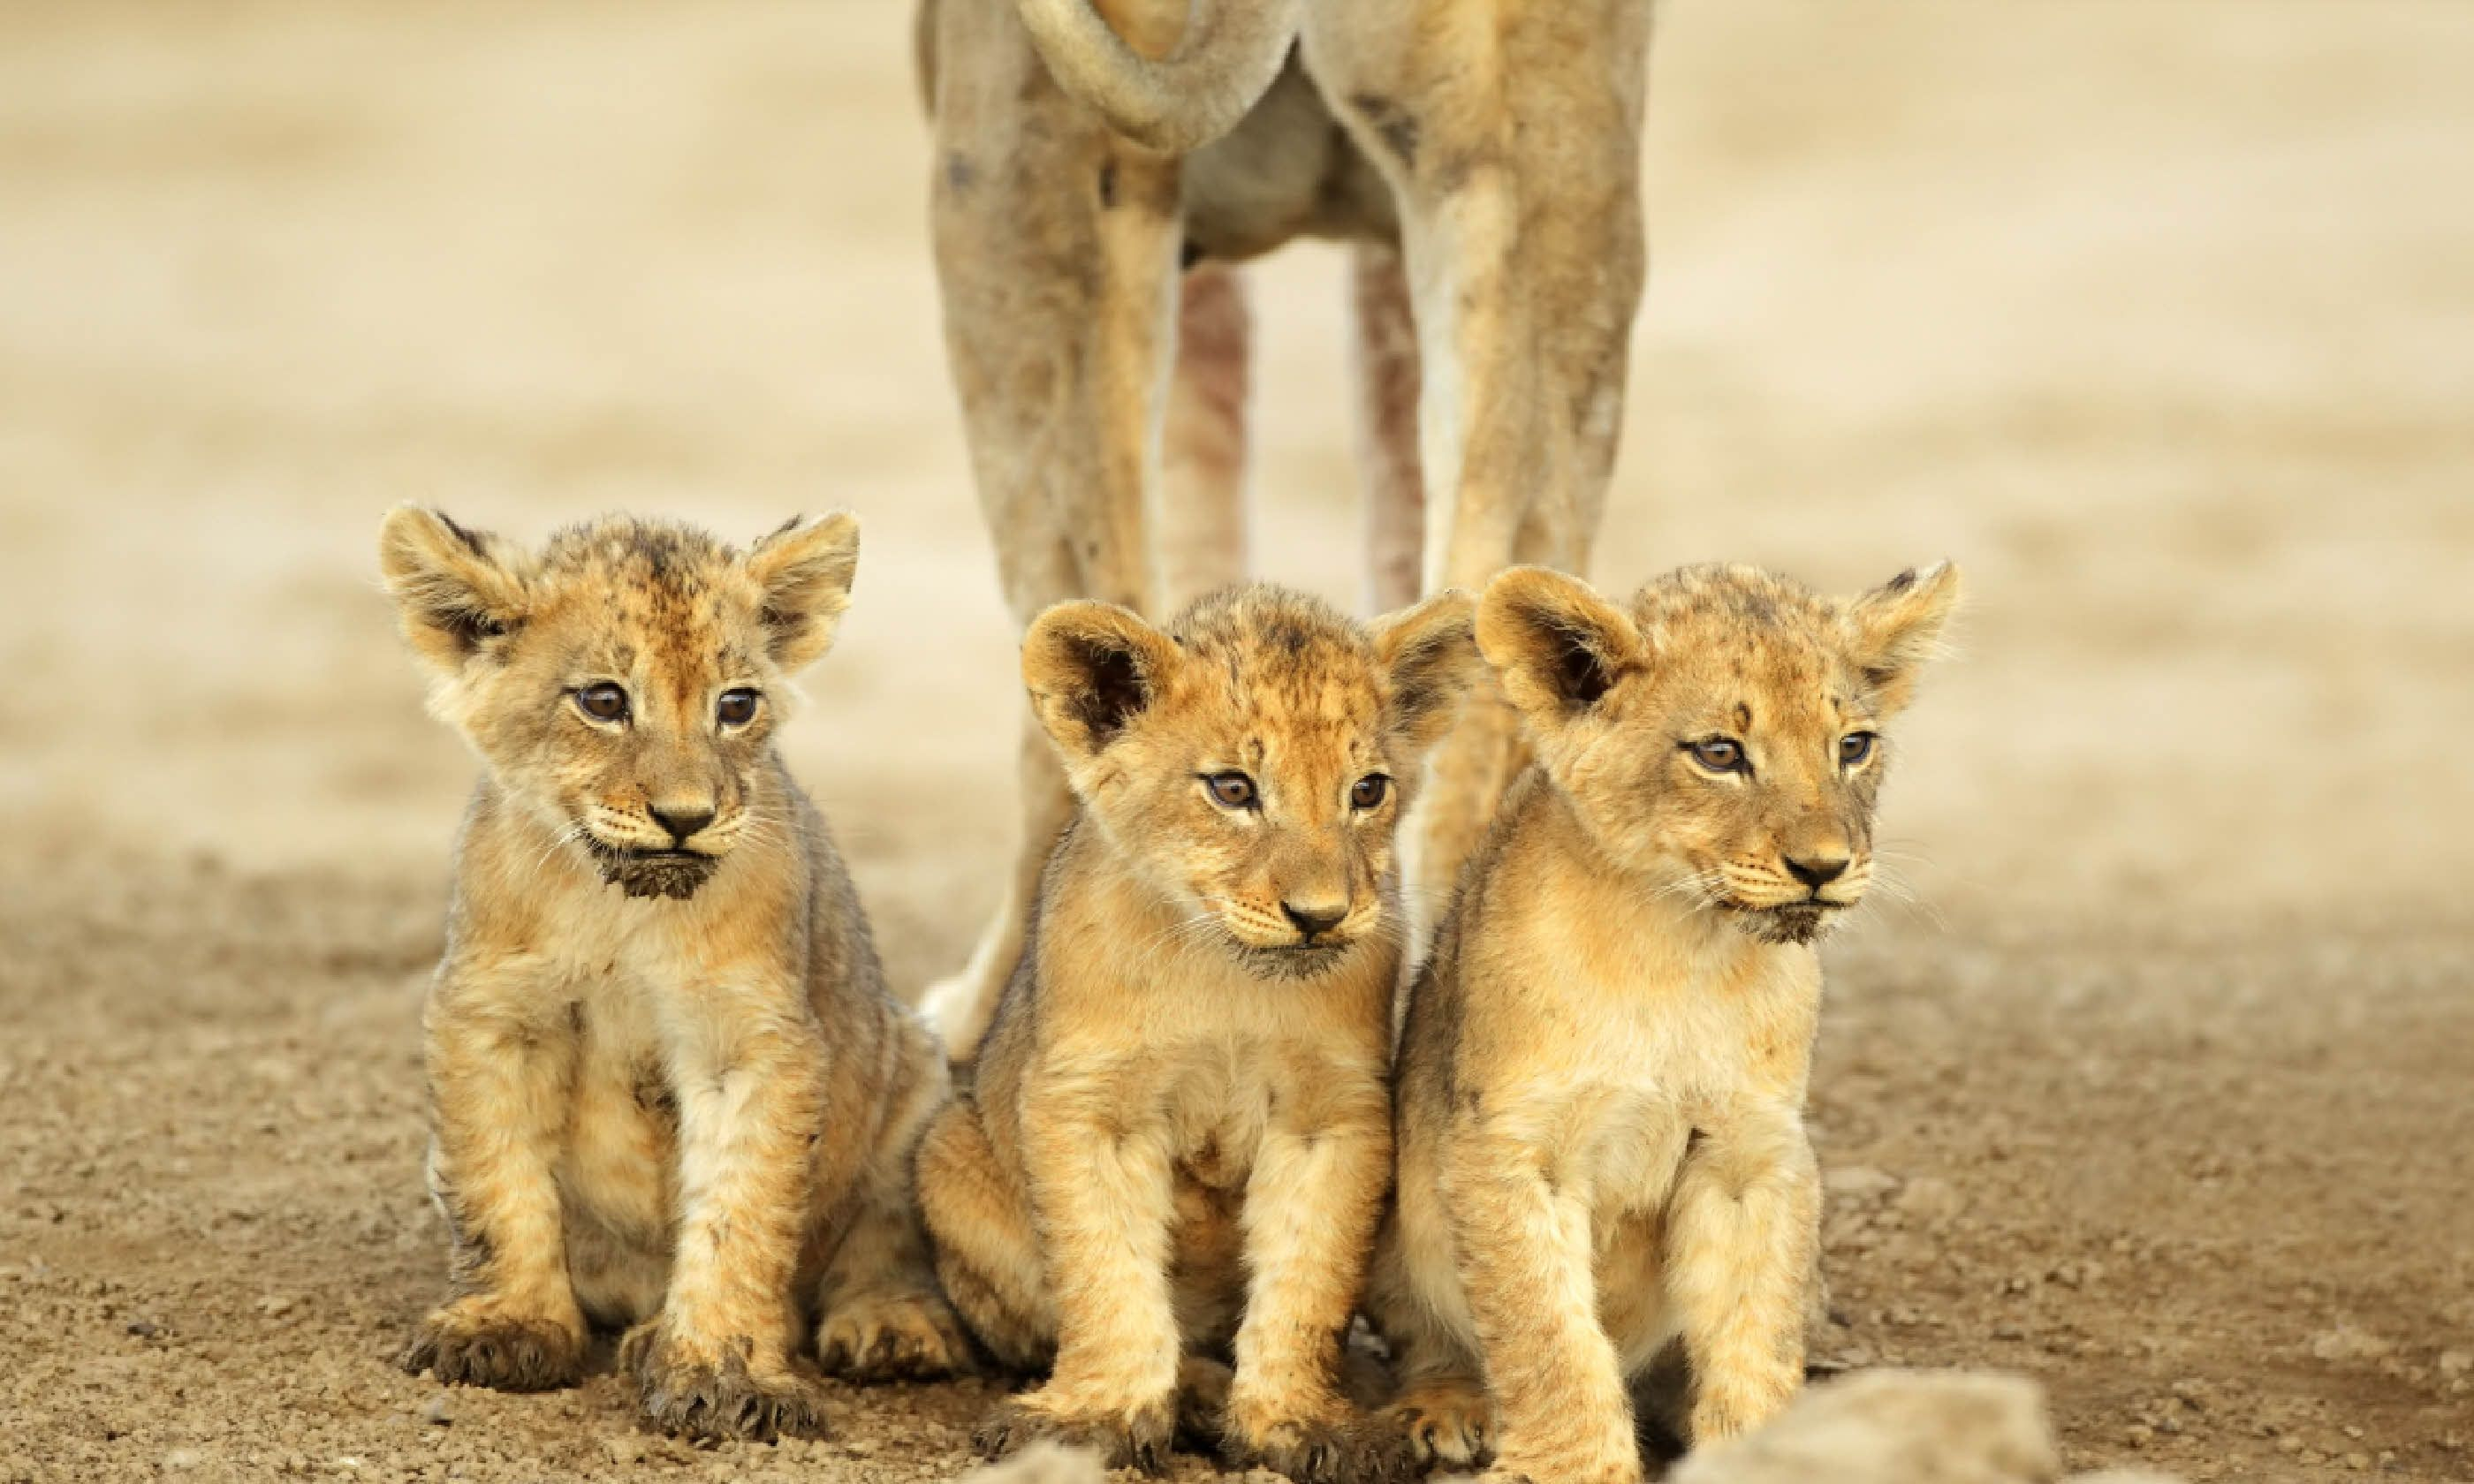 Lion cubs in the Kalahari desert (Shutterstock)